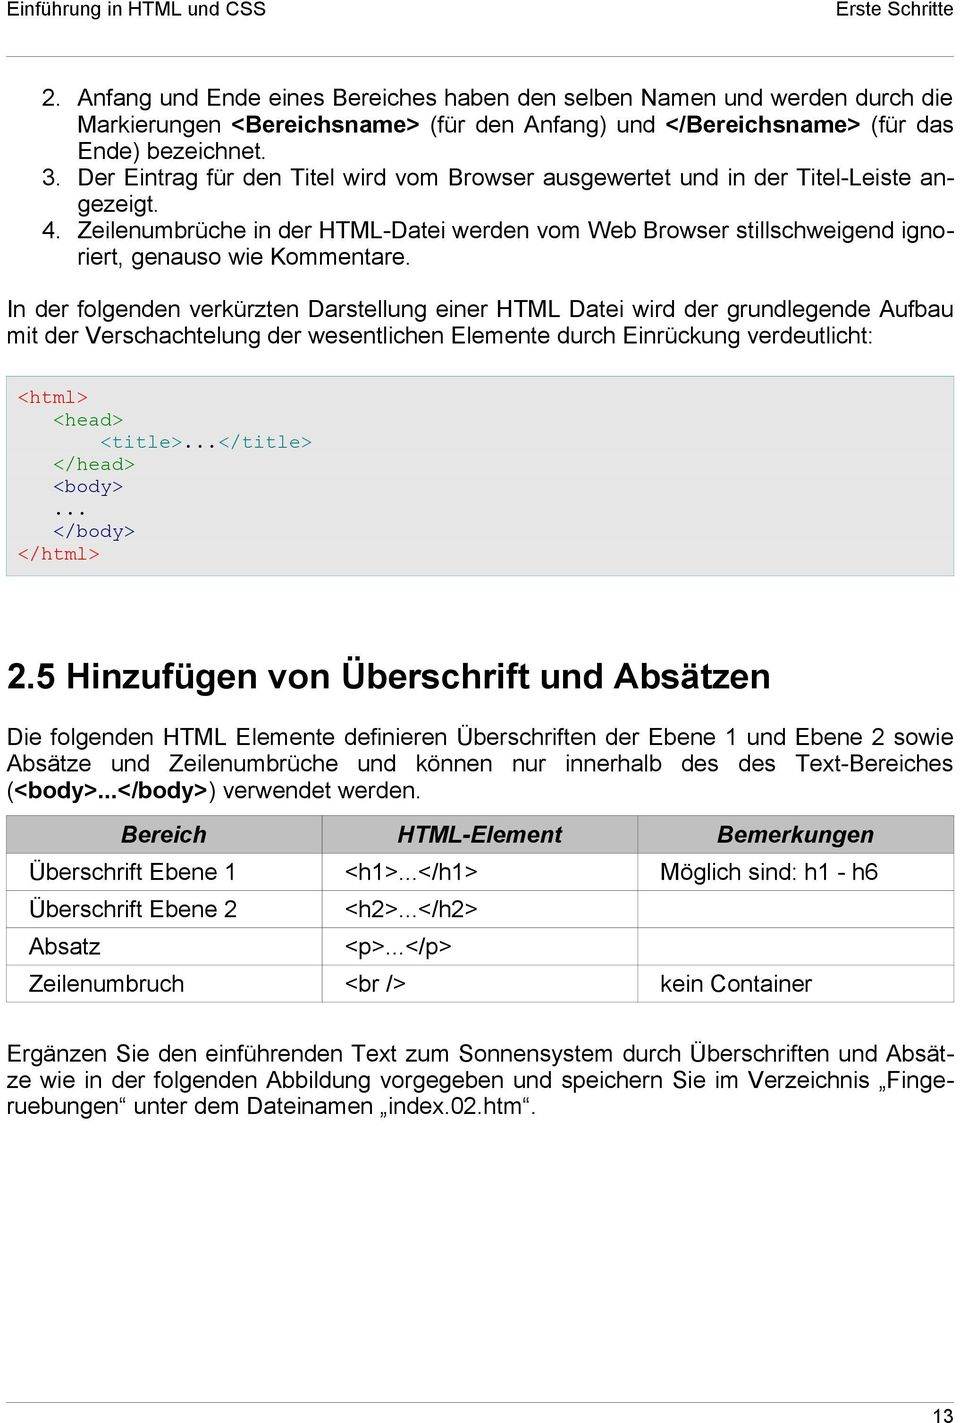 Fantastisch Html Basisvorlage Ideen - Entry Level Resume Vorlagen ...